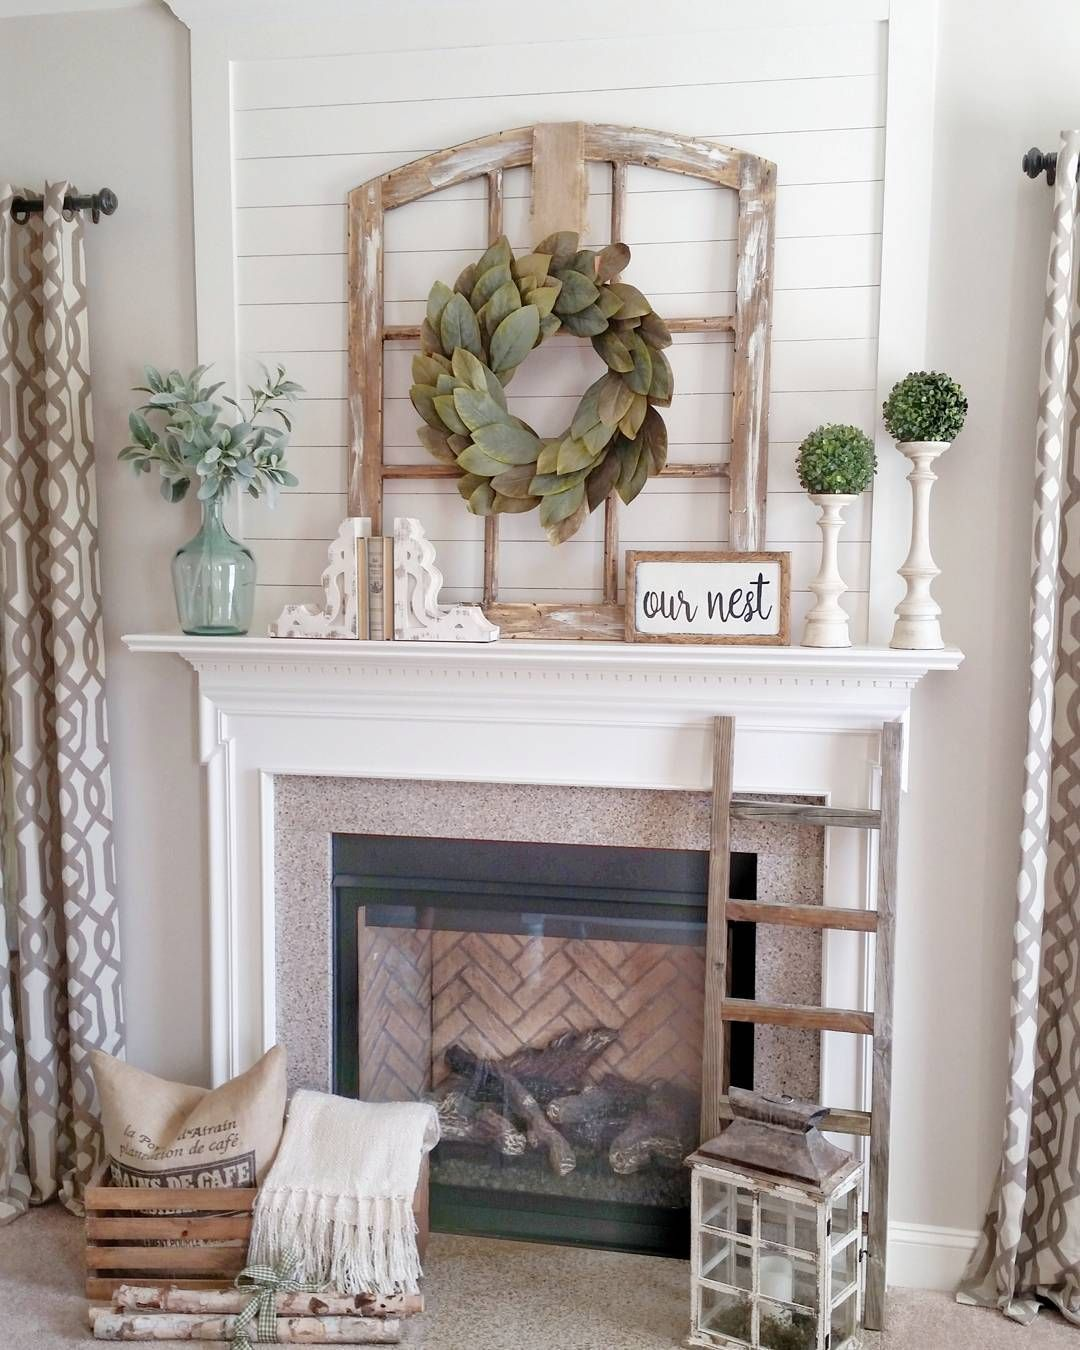 Simple Mantel Decor For Summer With Greenery #Summer #Home #Decoration